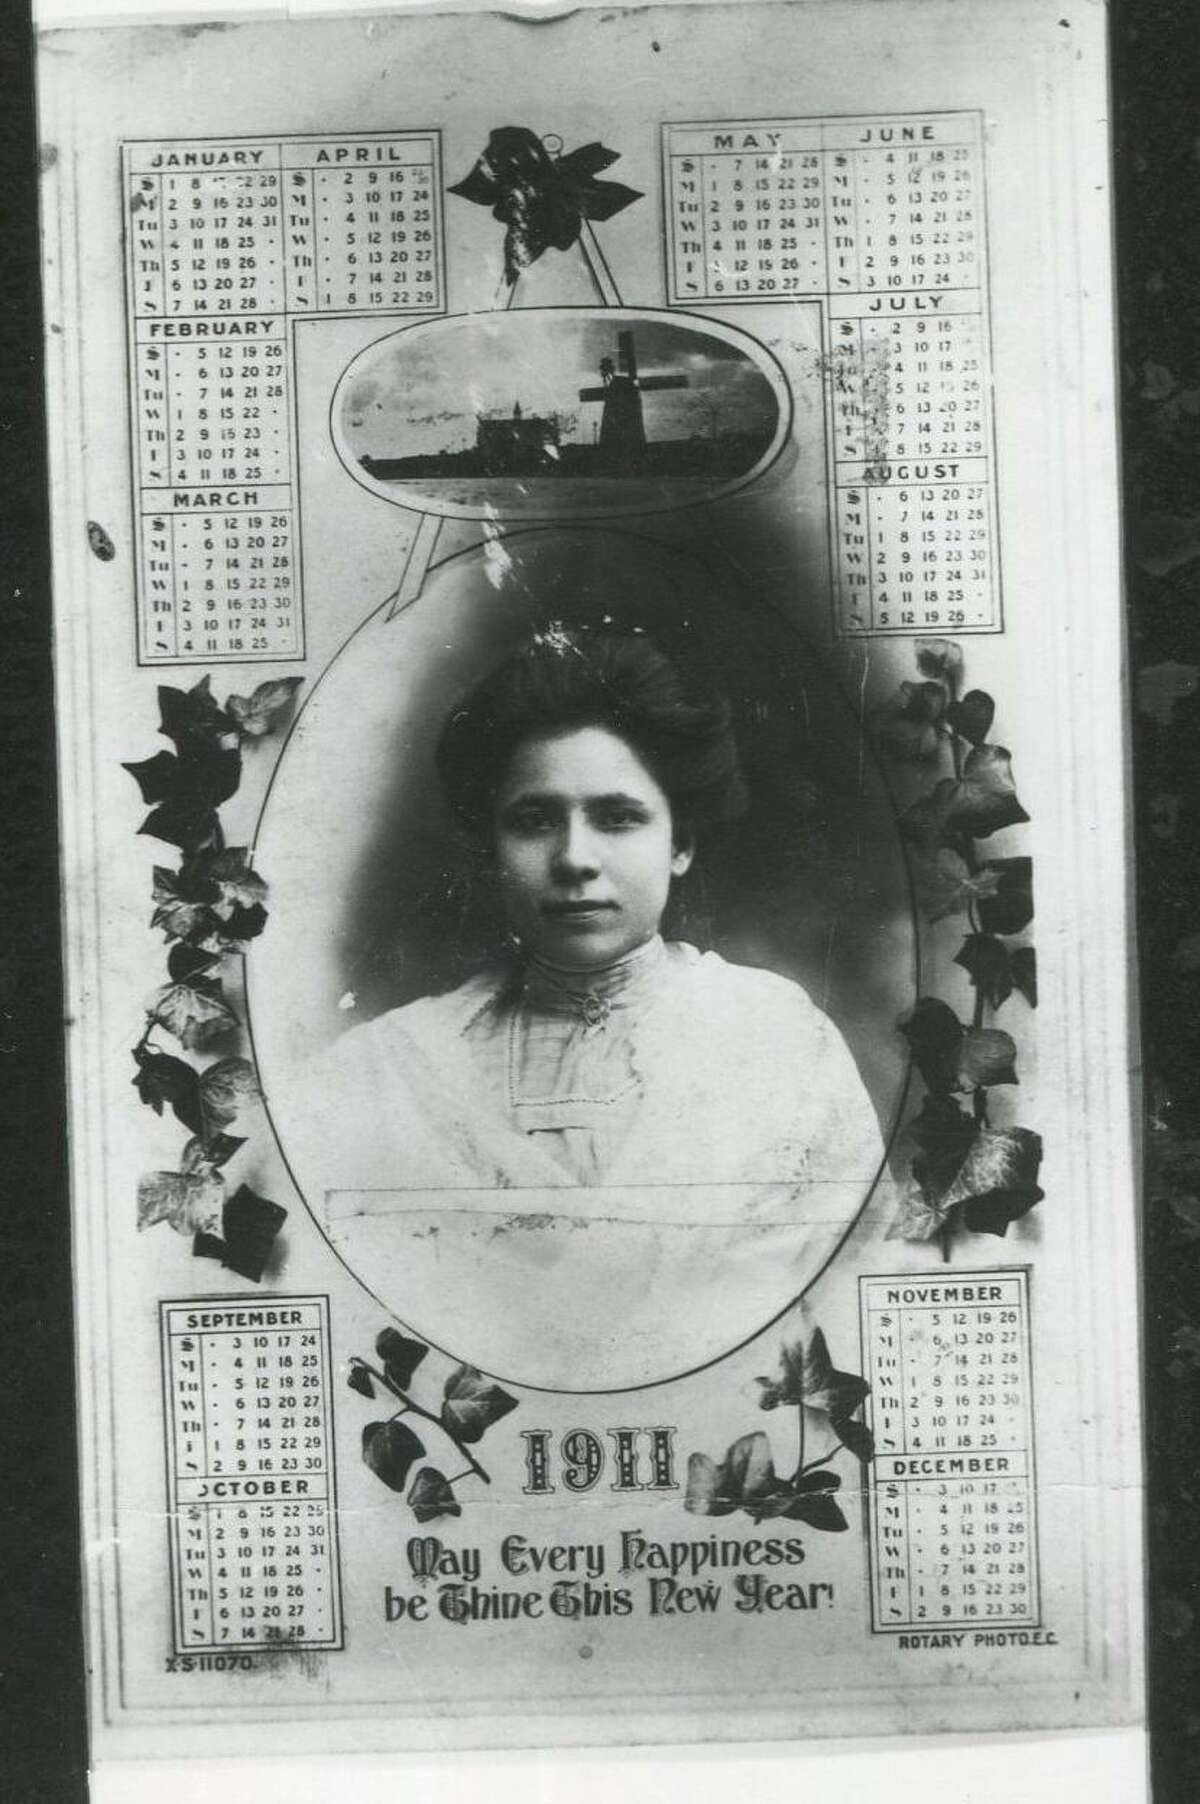 This 1911 calendar, distributed as a New Year's card, features a portrait of journalist and civil rights activist Jovita Idar.